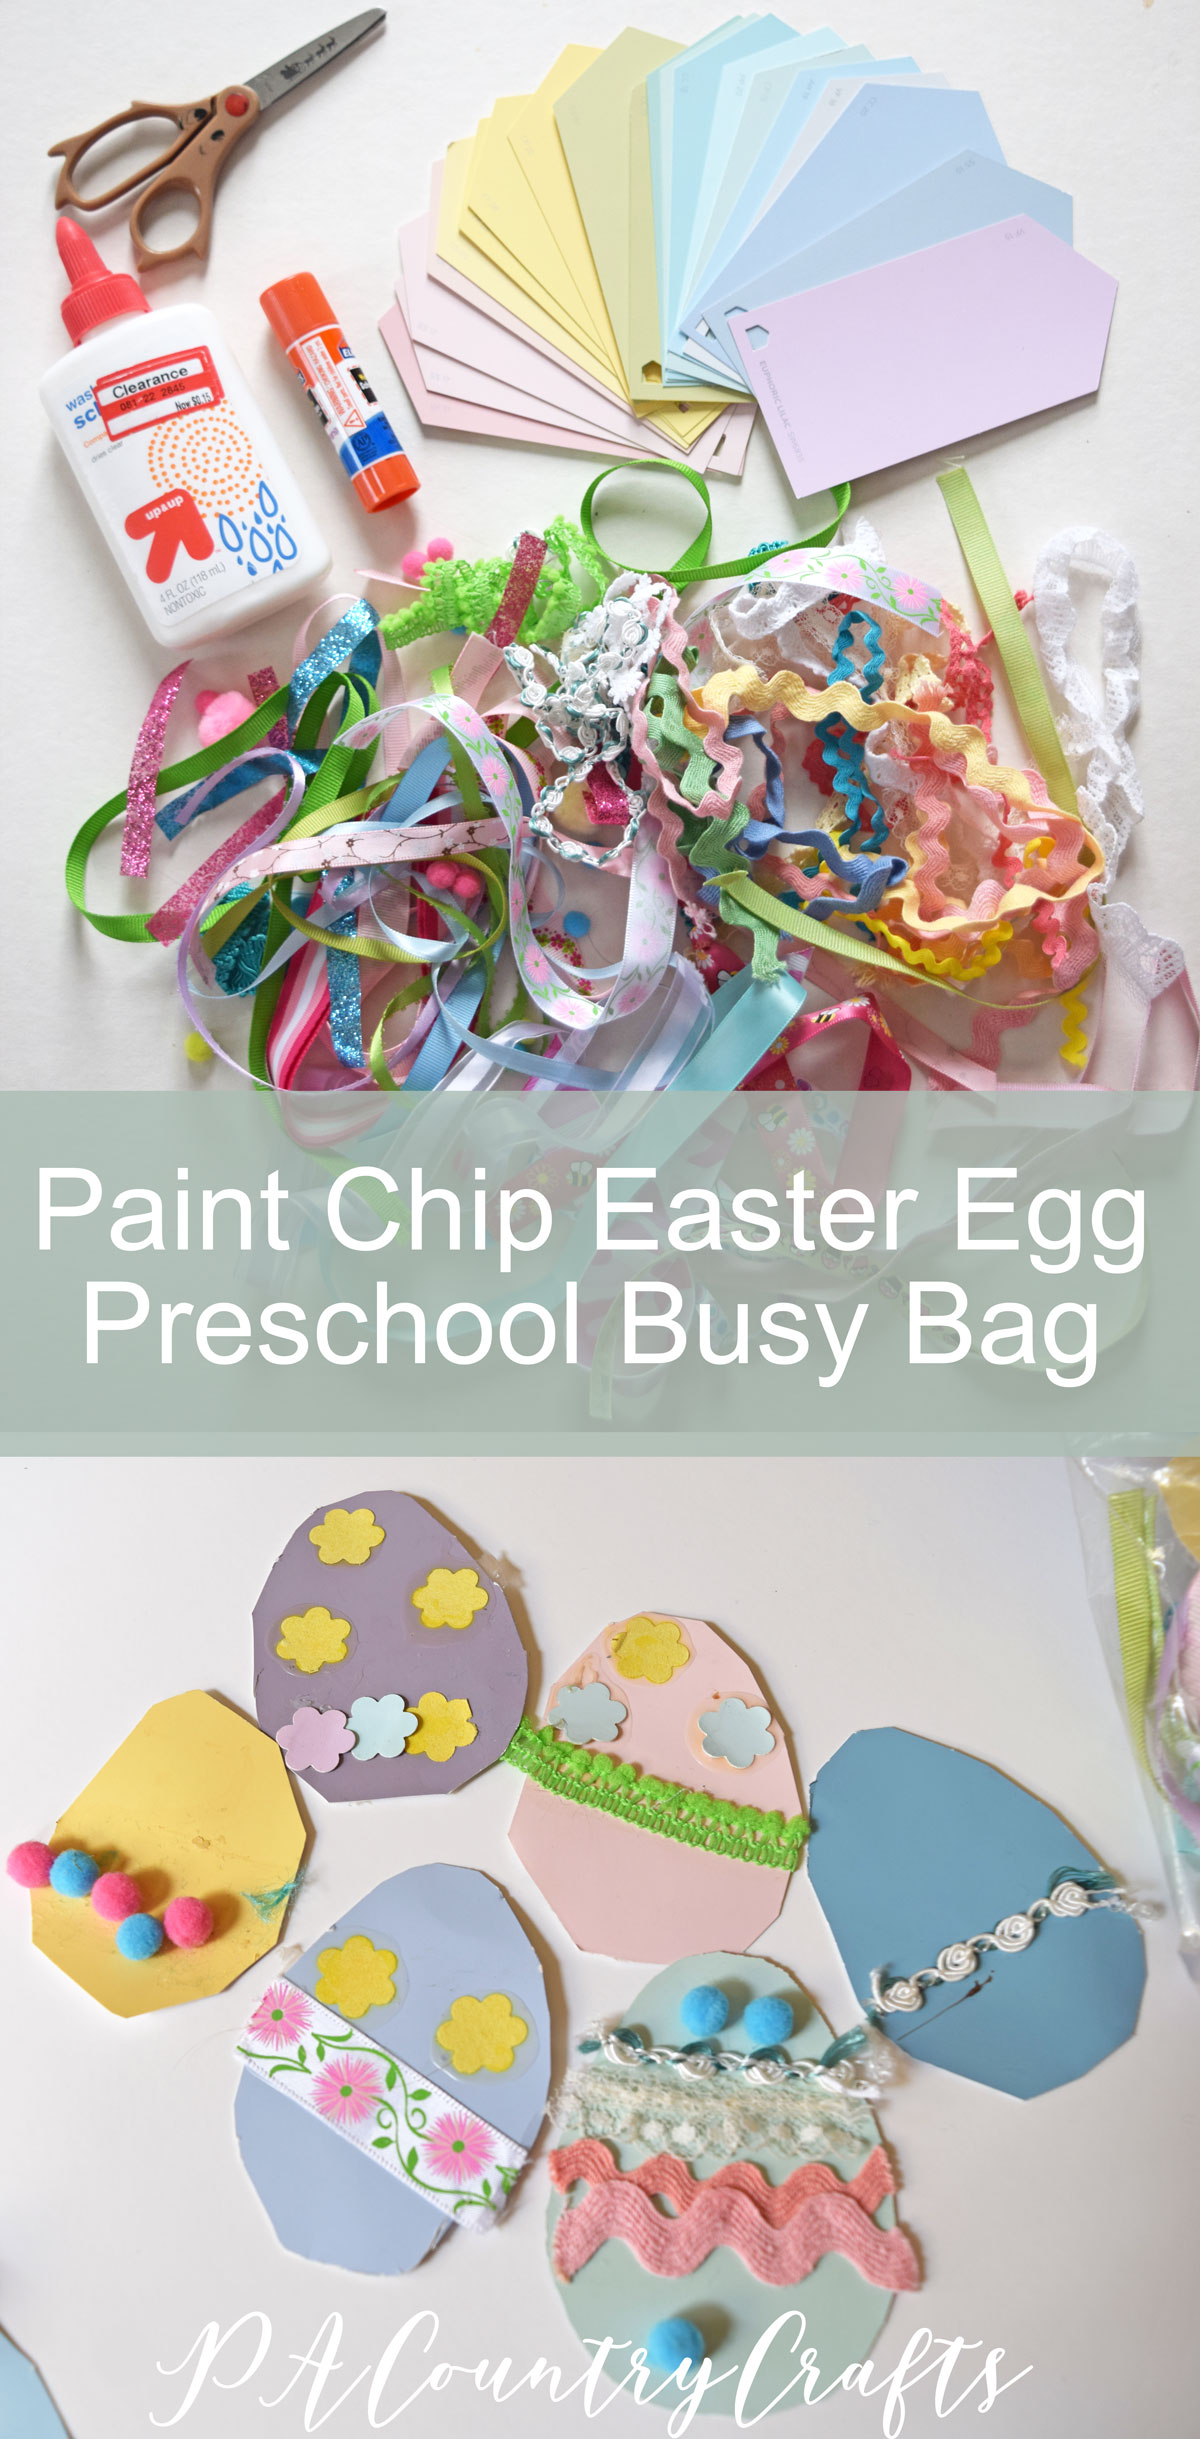 Paint Chip Easter Egg Preschool Busy Bag Craft